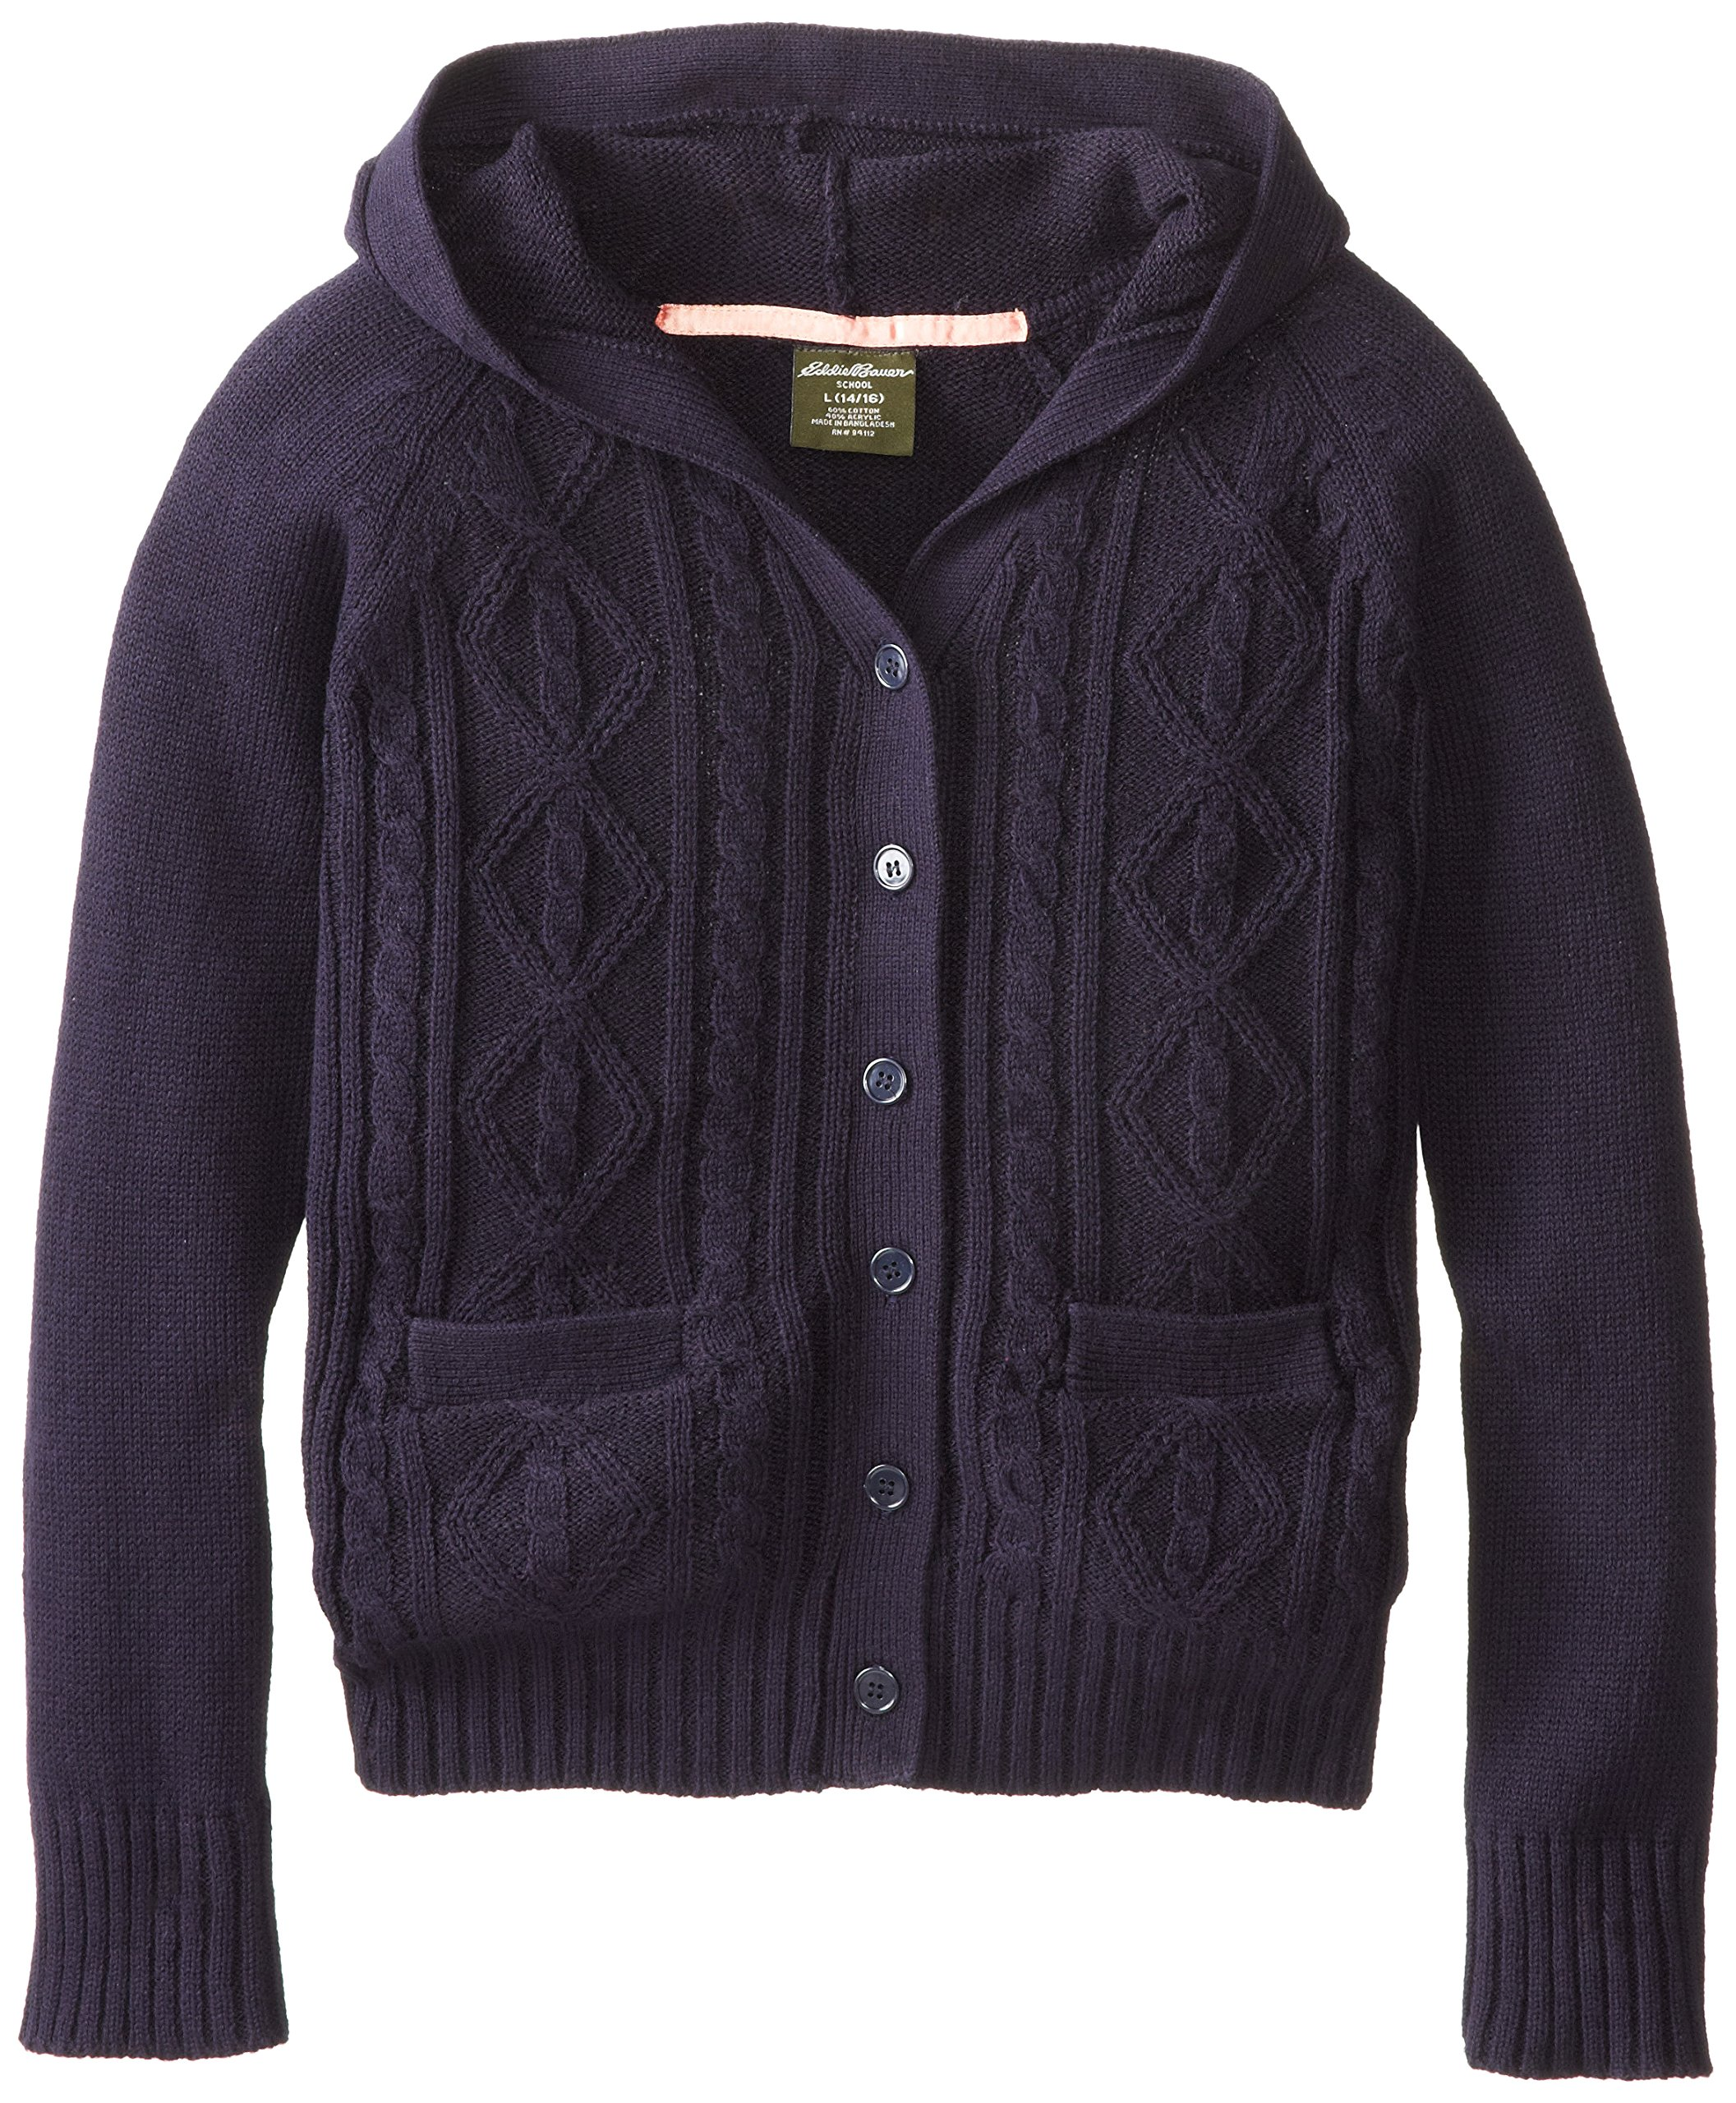 Eddie Bauer Big Girls' Sweater (More Styles Available), Navy-PIJFE, 14/16